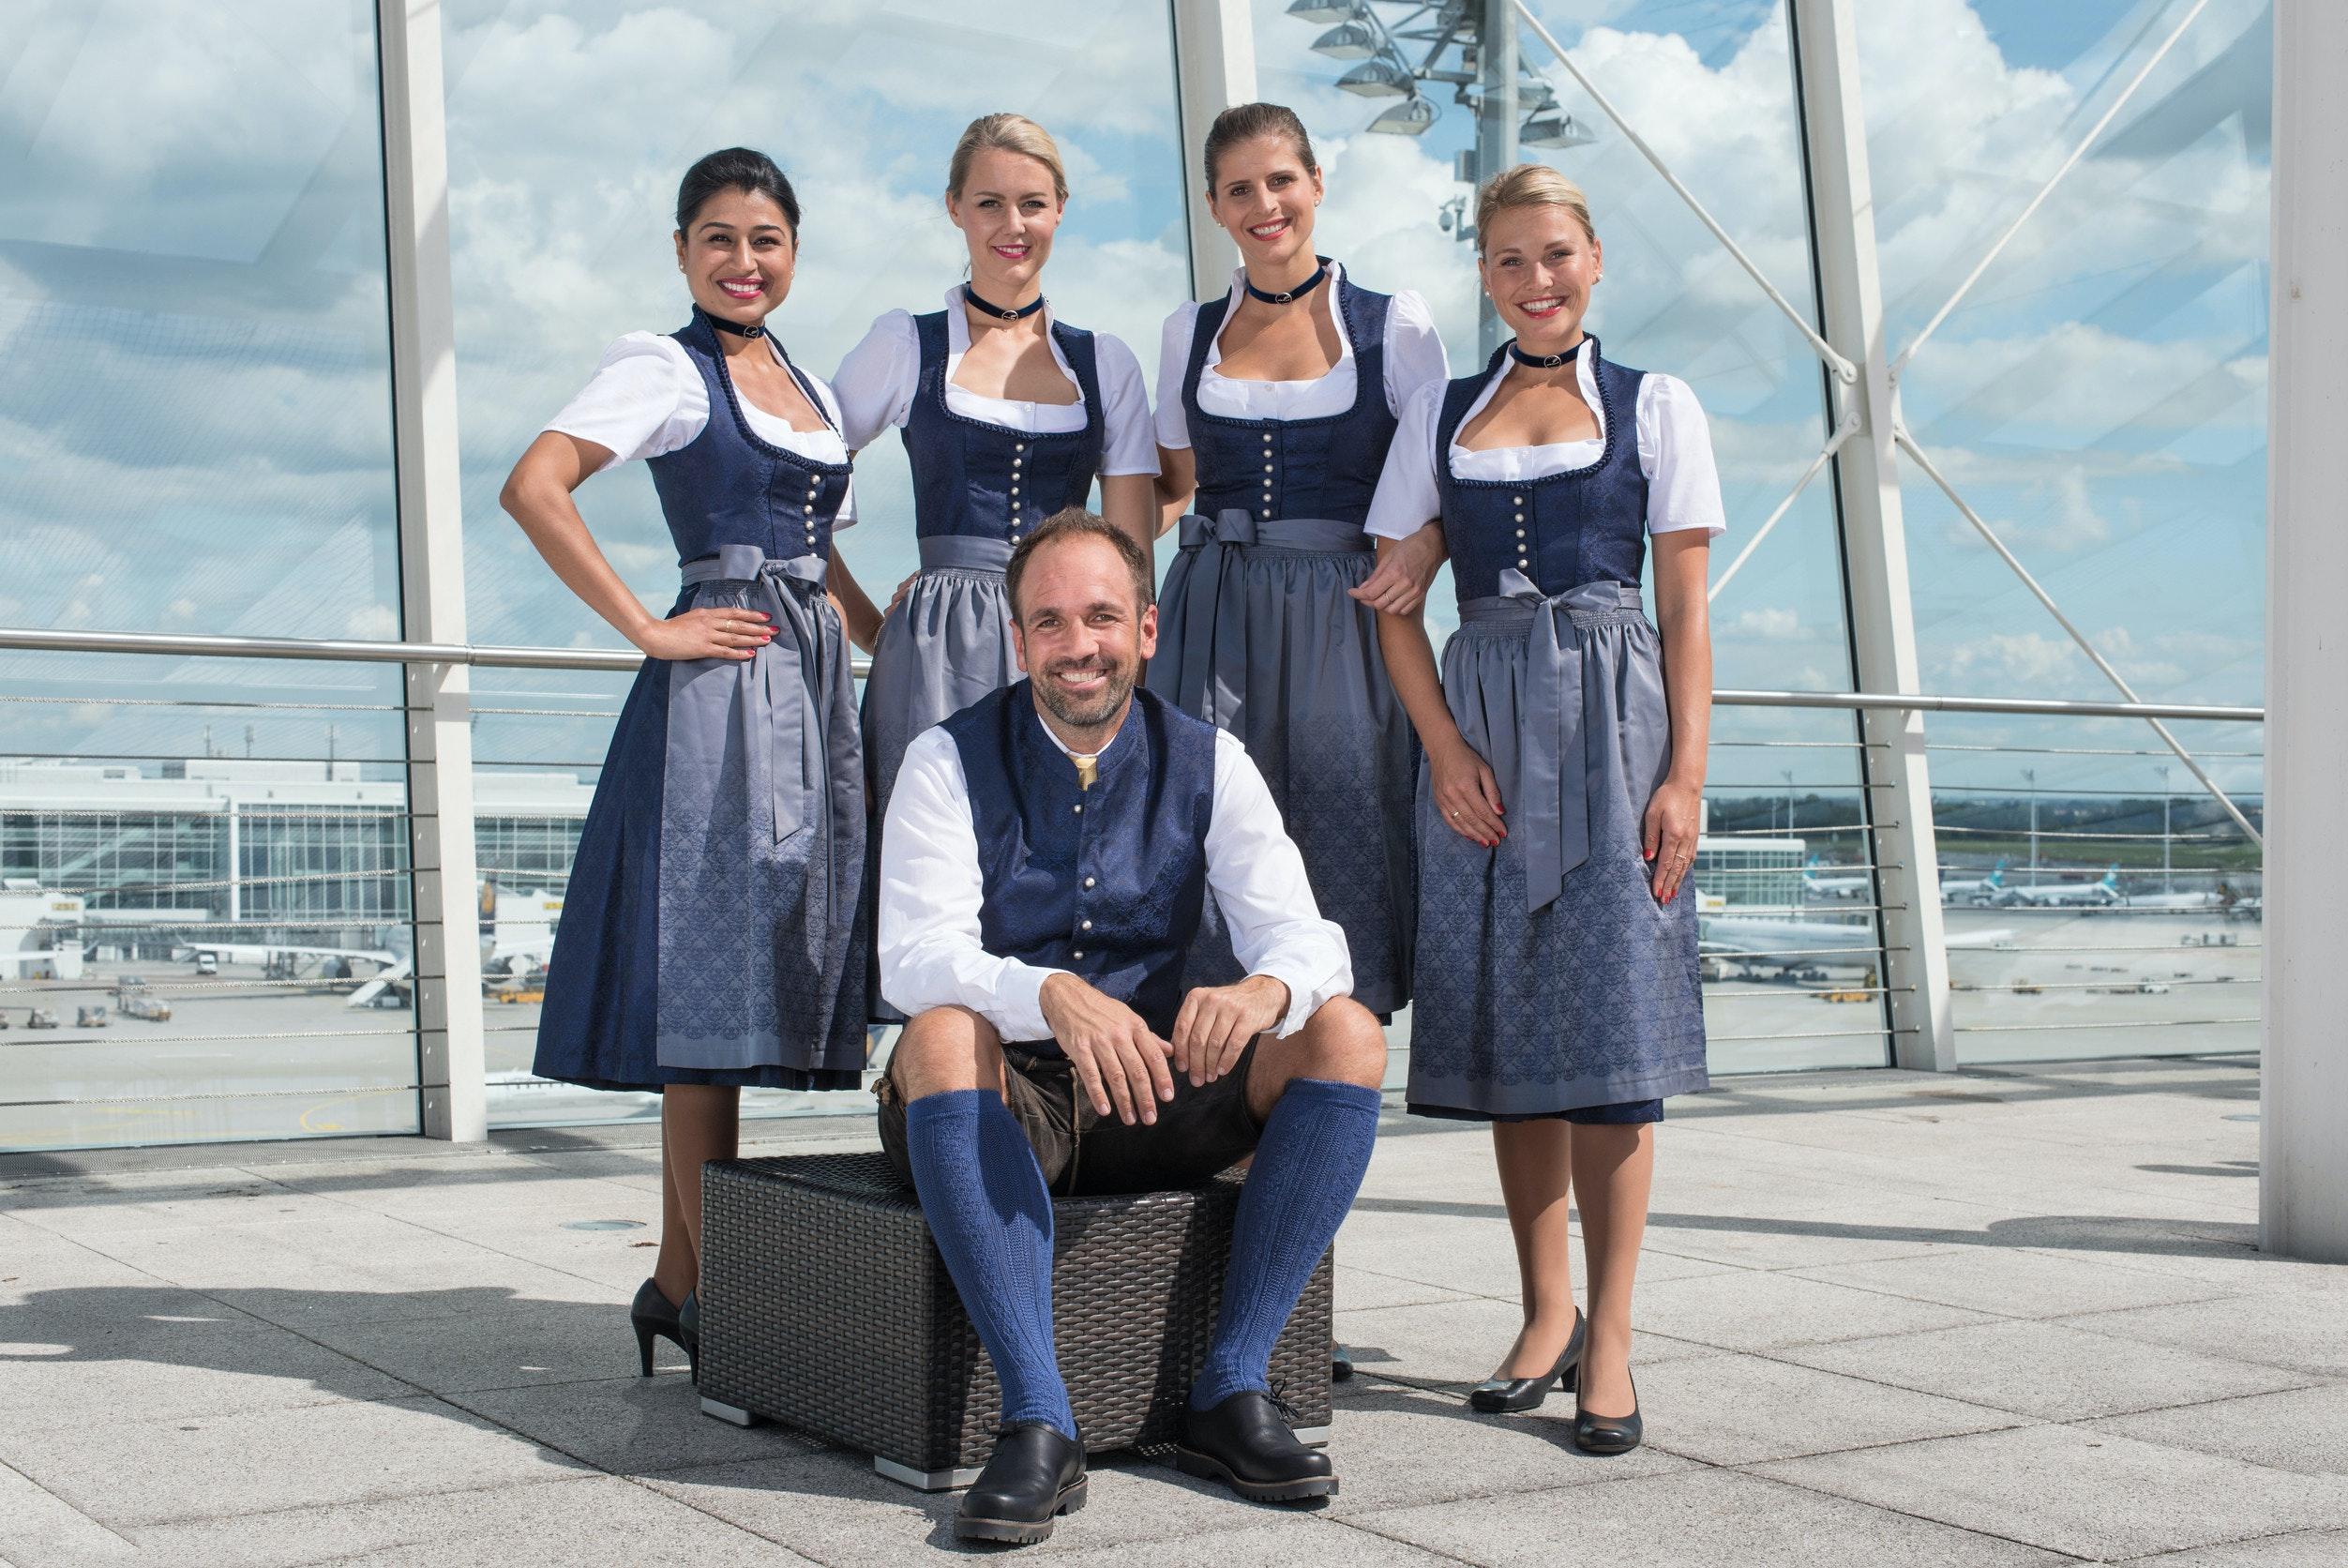 Munich's traditional clothing specialist, Angermaier, designed the custom dirndls and lederhosen for the flight attendants.